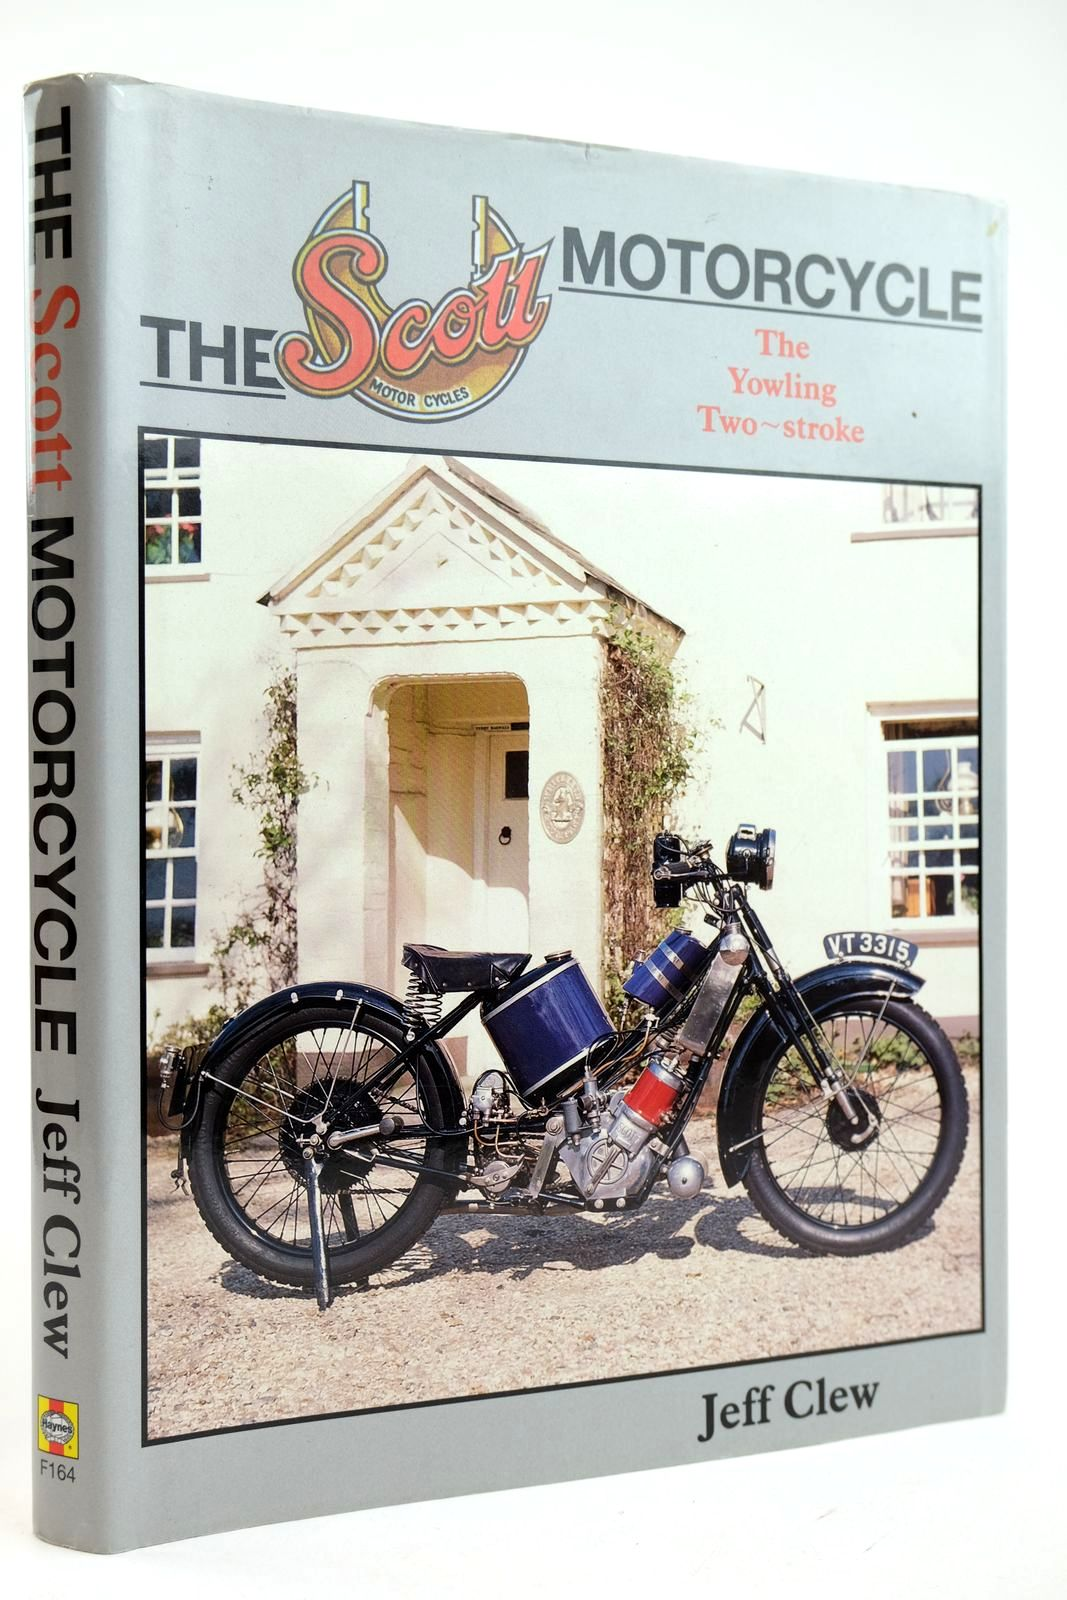 Photo of THE SCOTT MOTORCYCLE written by Clew, Jeff published by Foulis, Haynes (STOCK CODE: 2132302)  for sale by Stella & Rose's Books